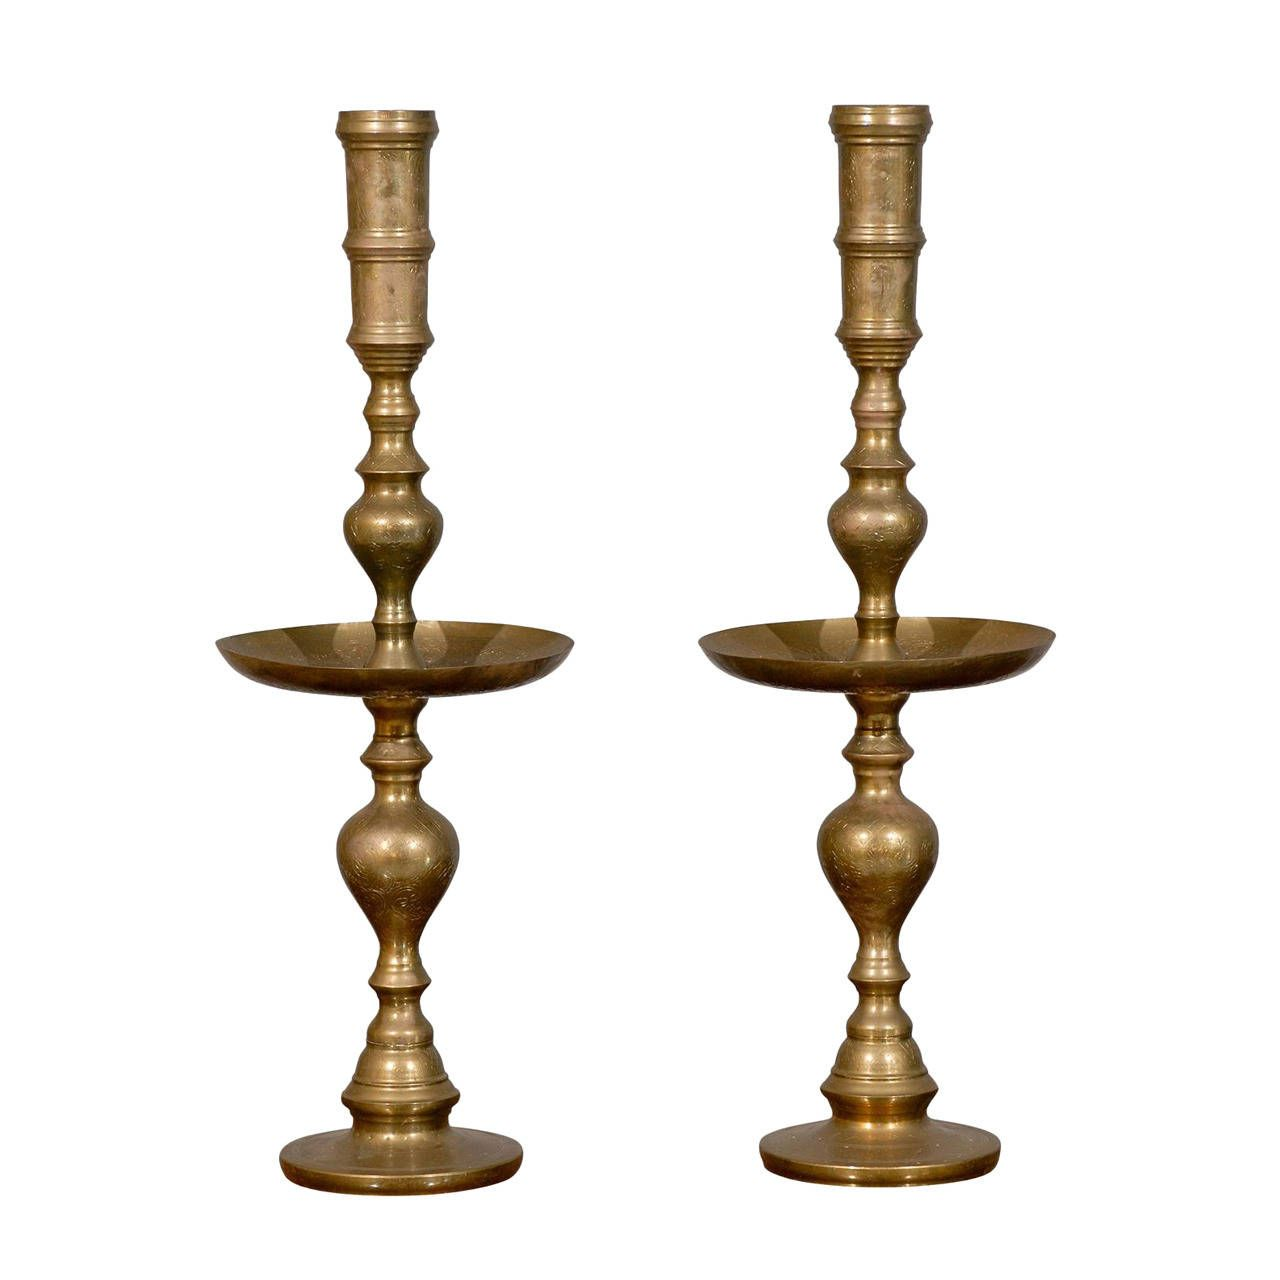 Tall pair of mid century brass candlesticks mid century modern